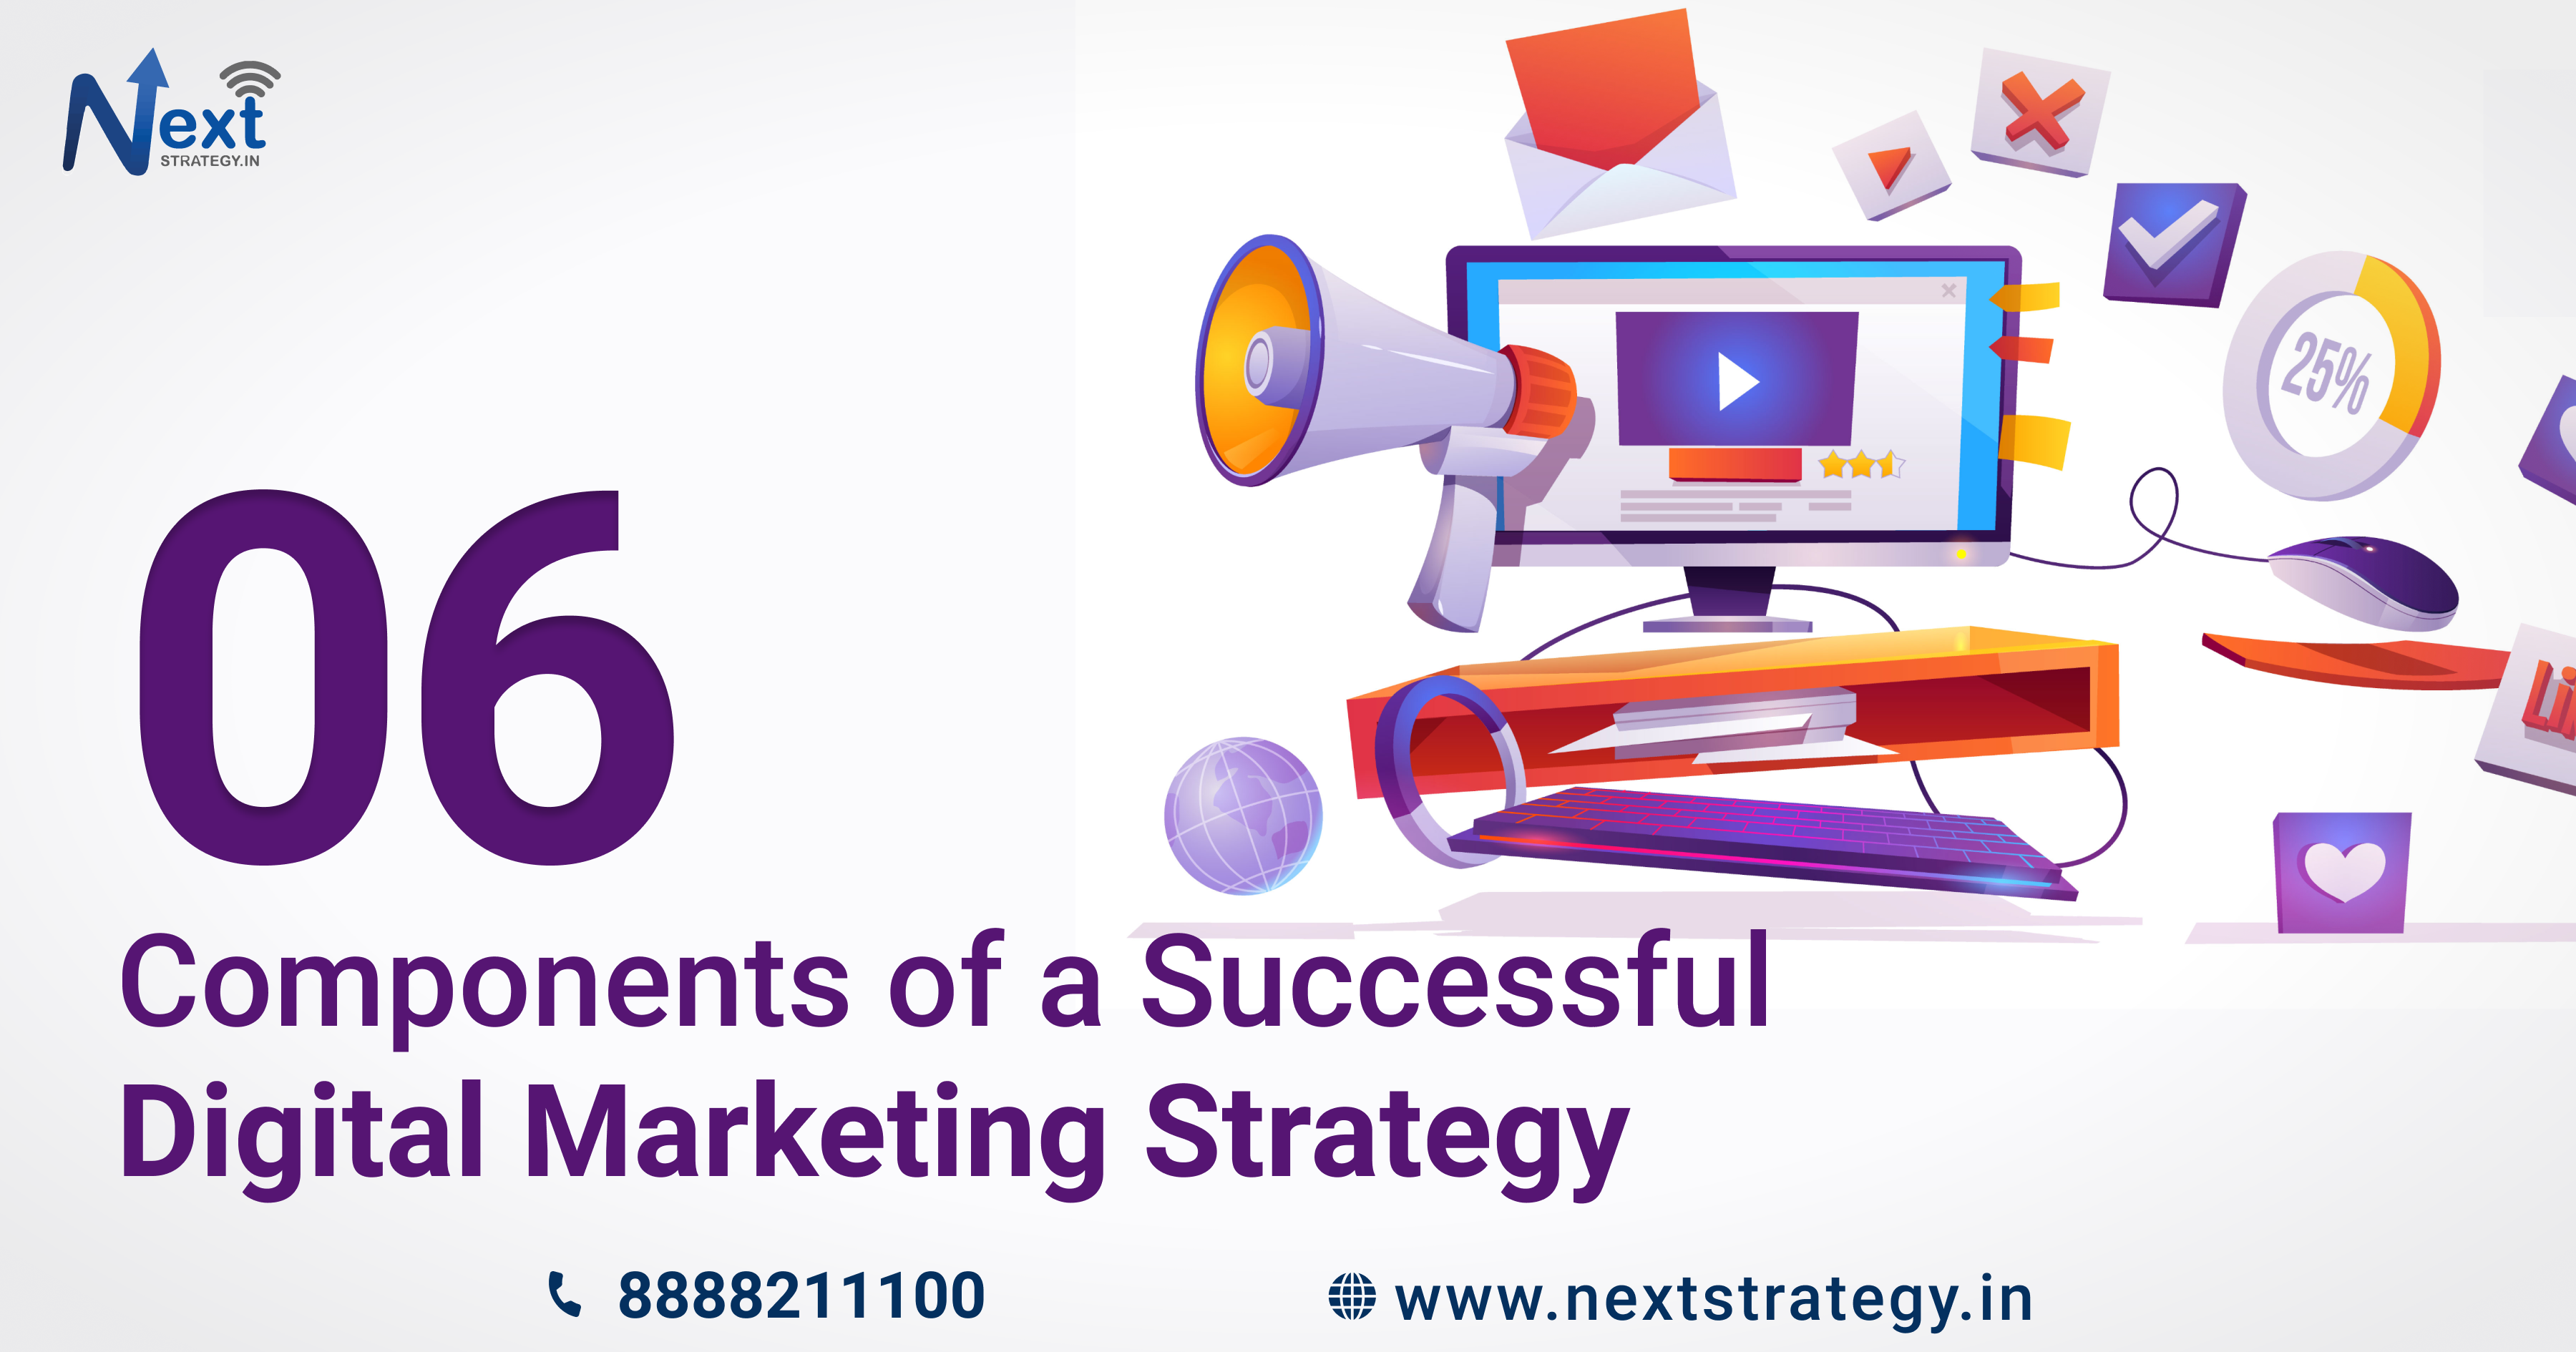 7 Components of a Successful Digital Marketing Strategy - Nextstrategy.in